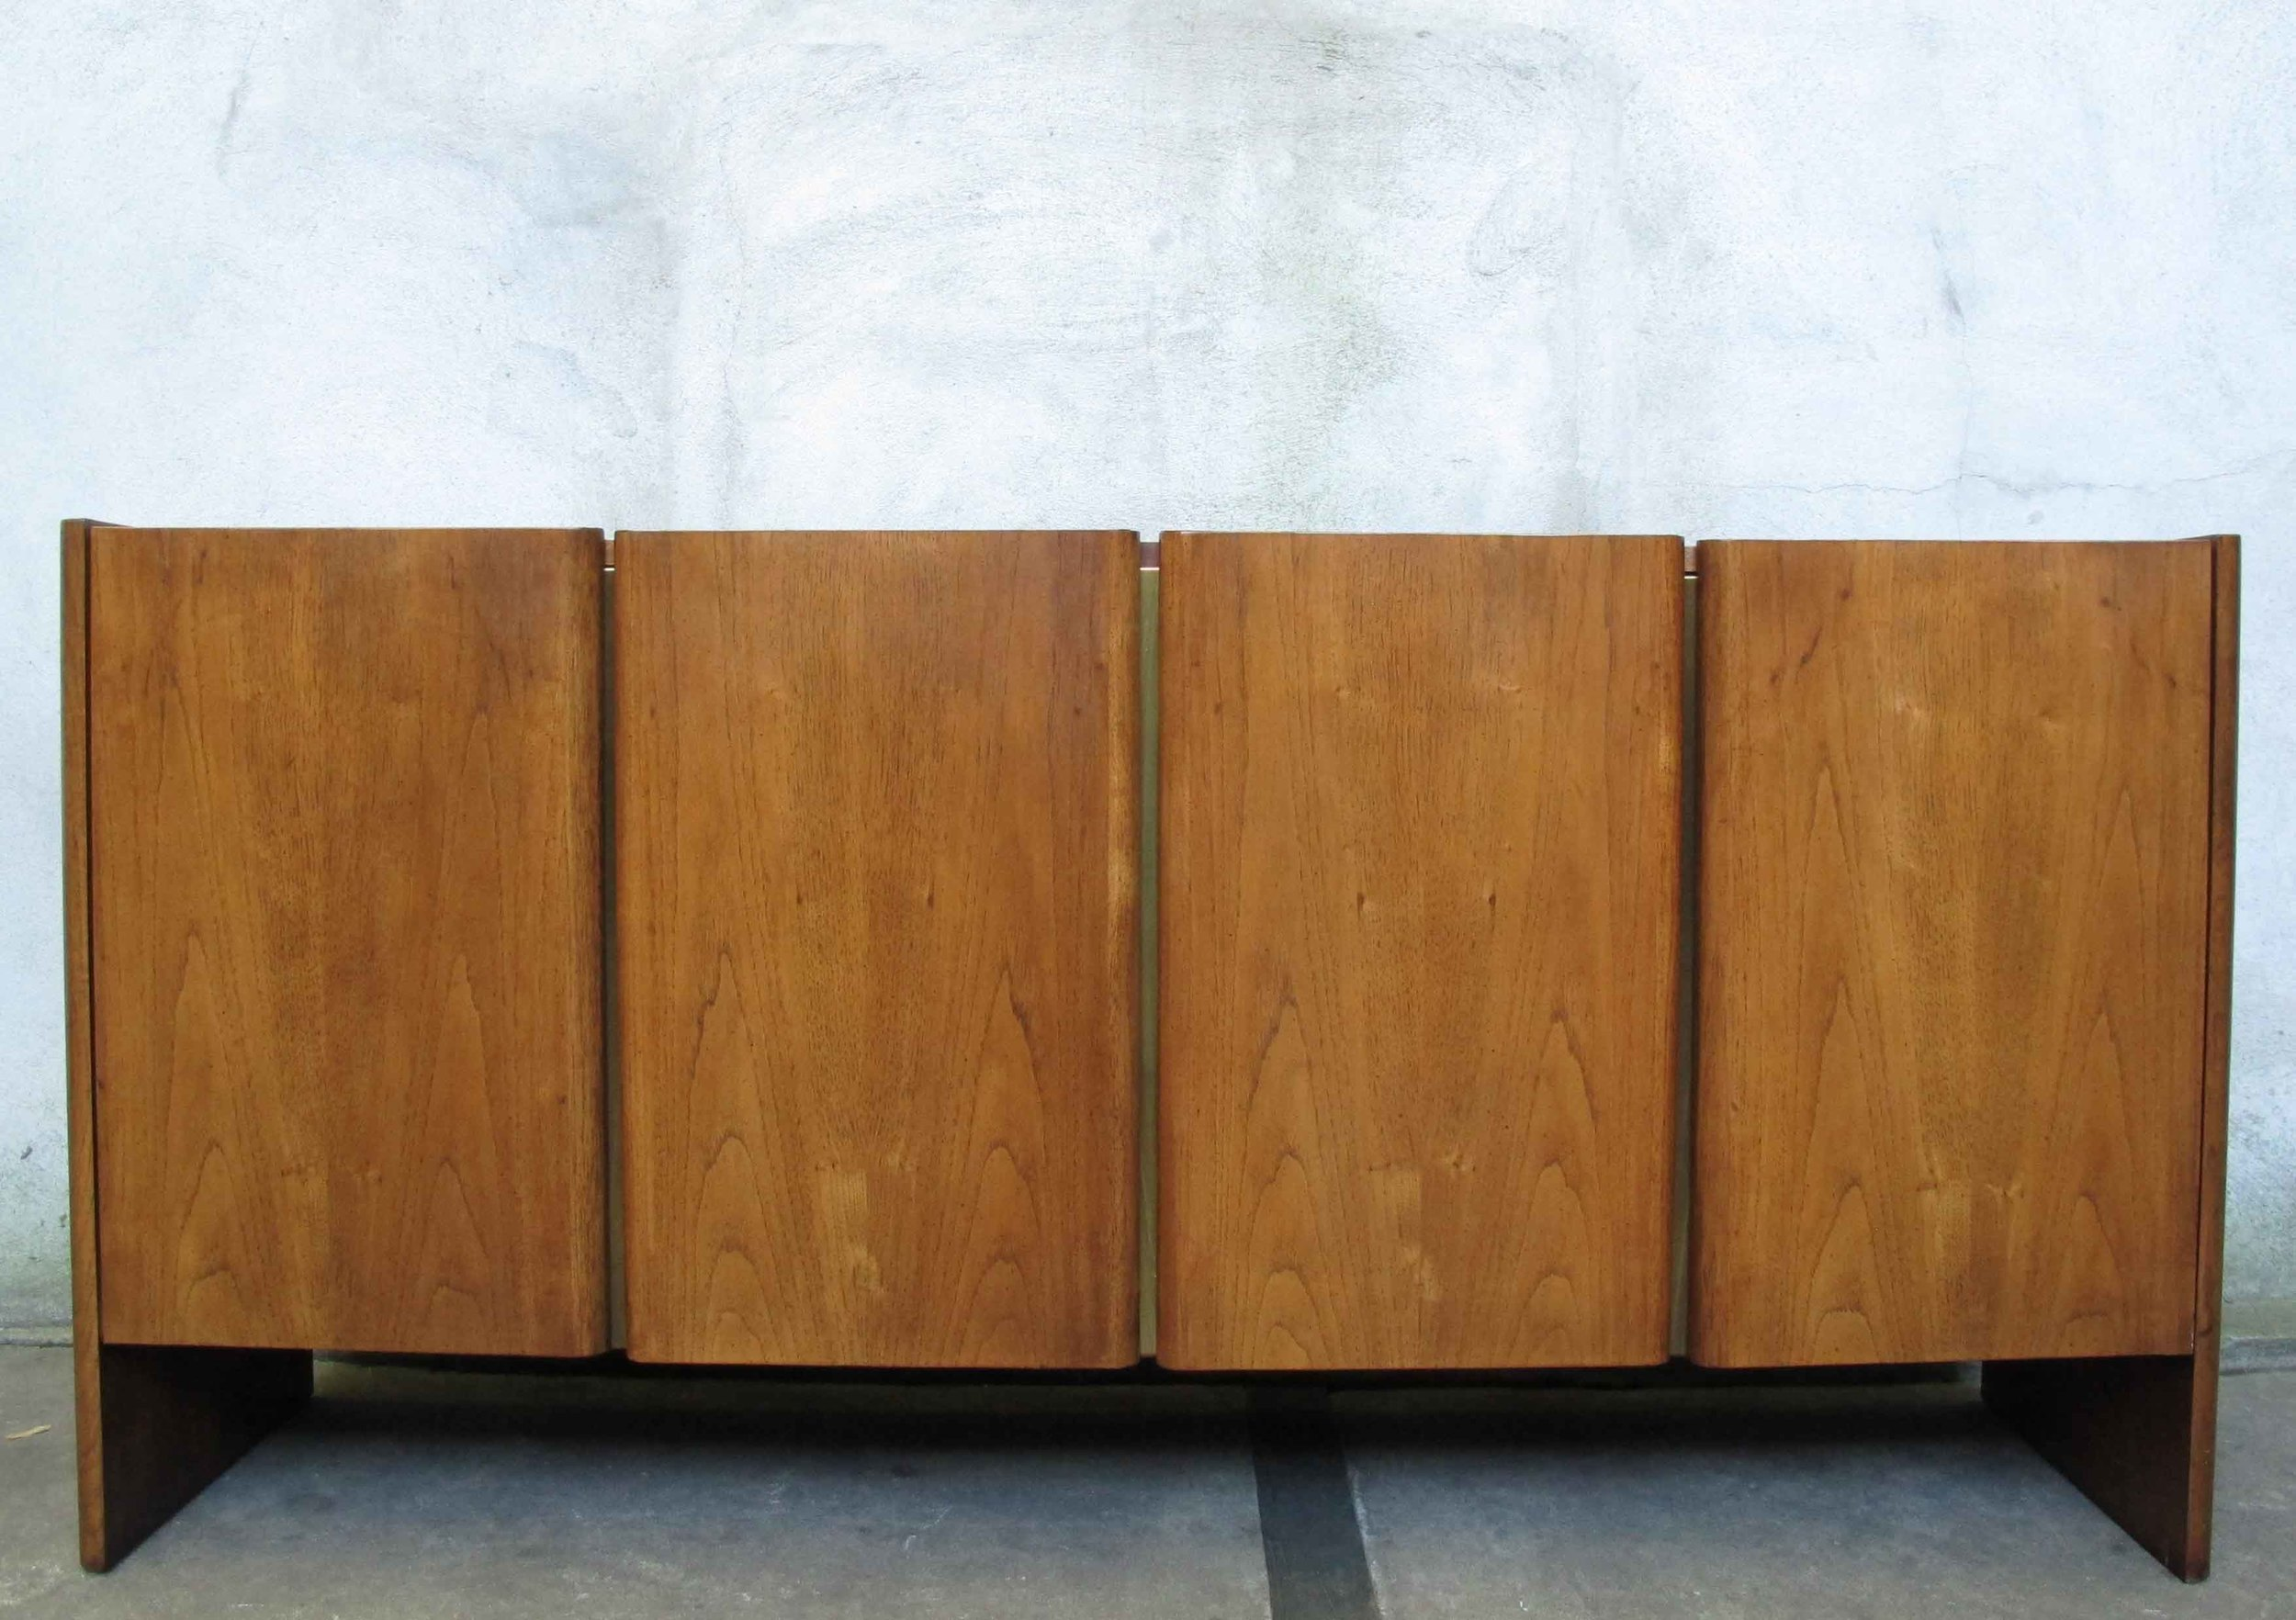 MID CENTURY MODERN CREDENZA BY FOUNDERS